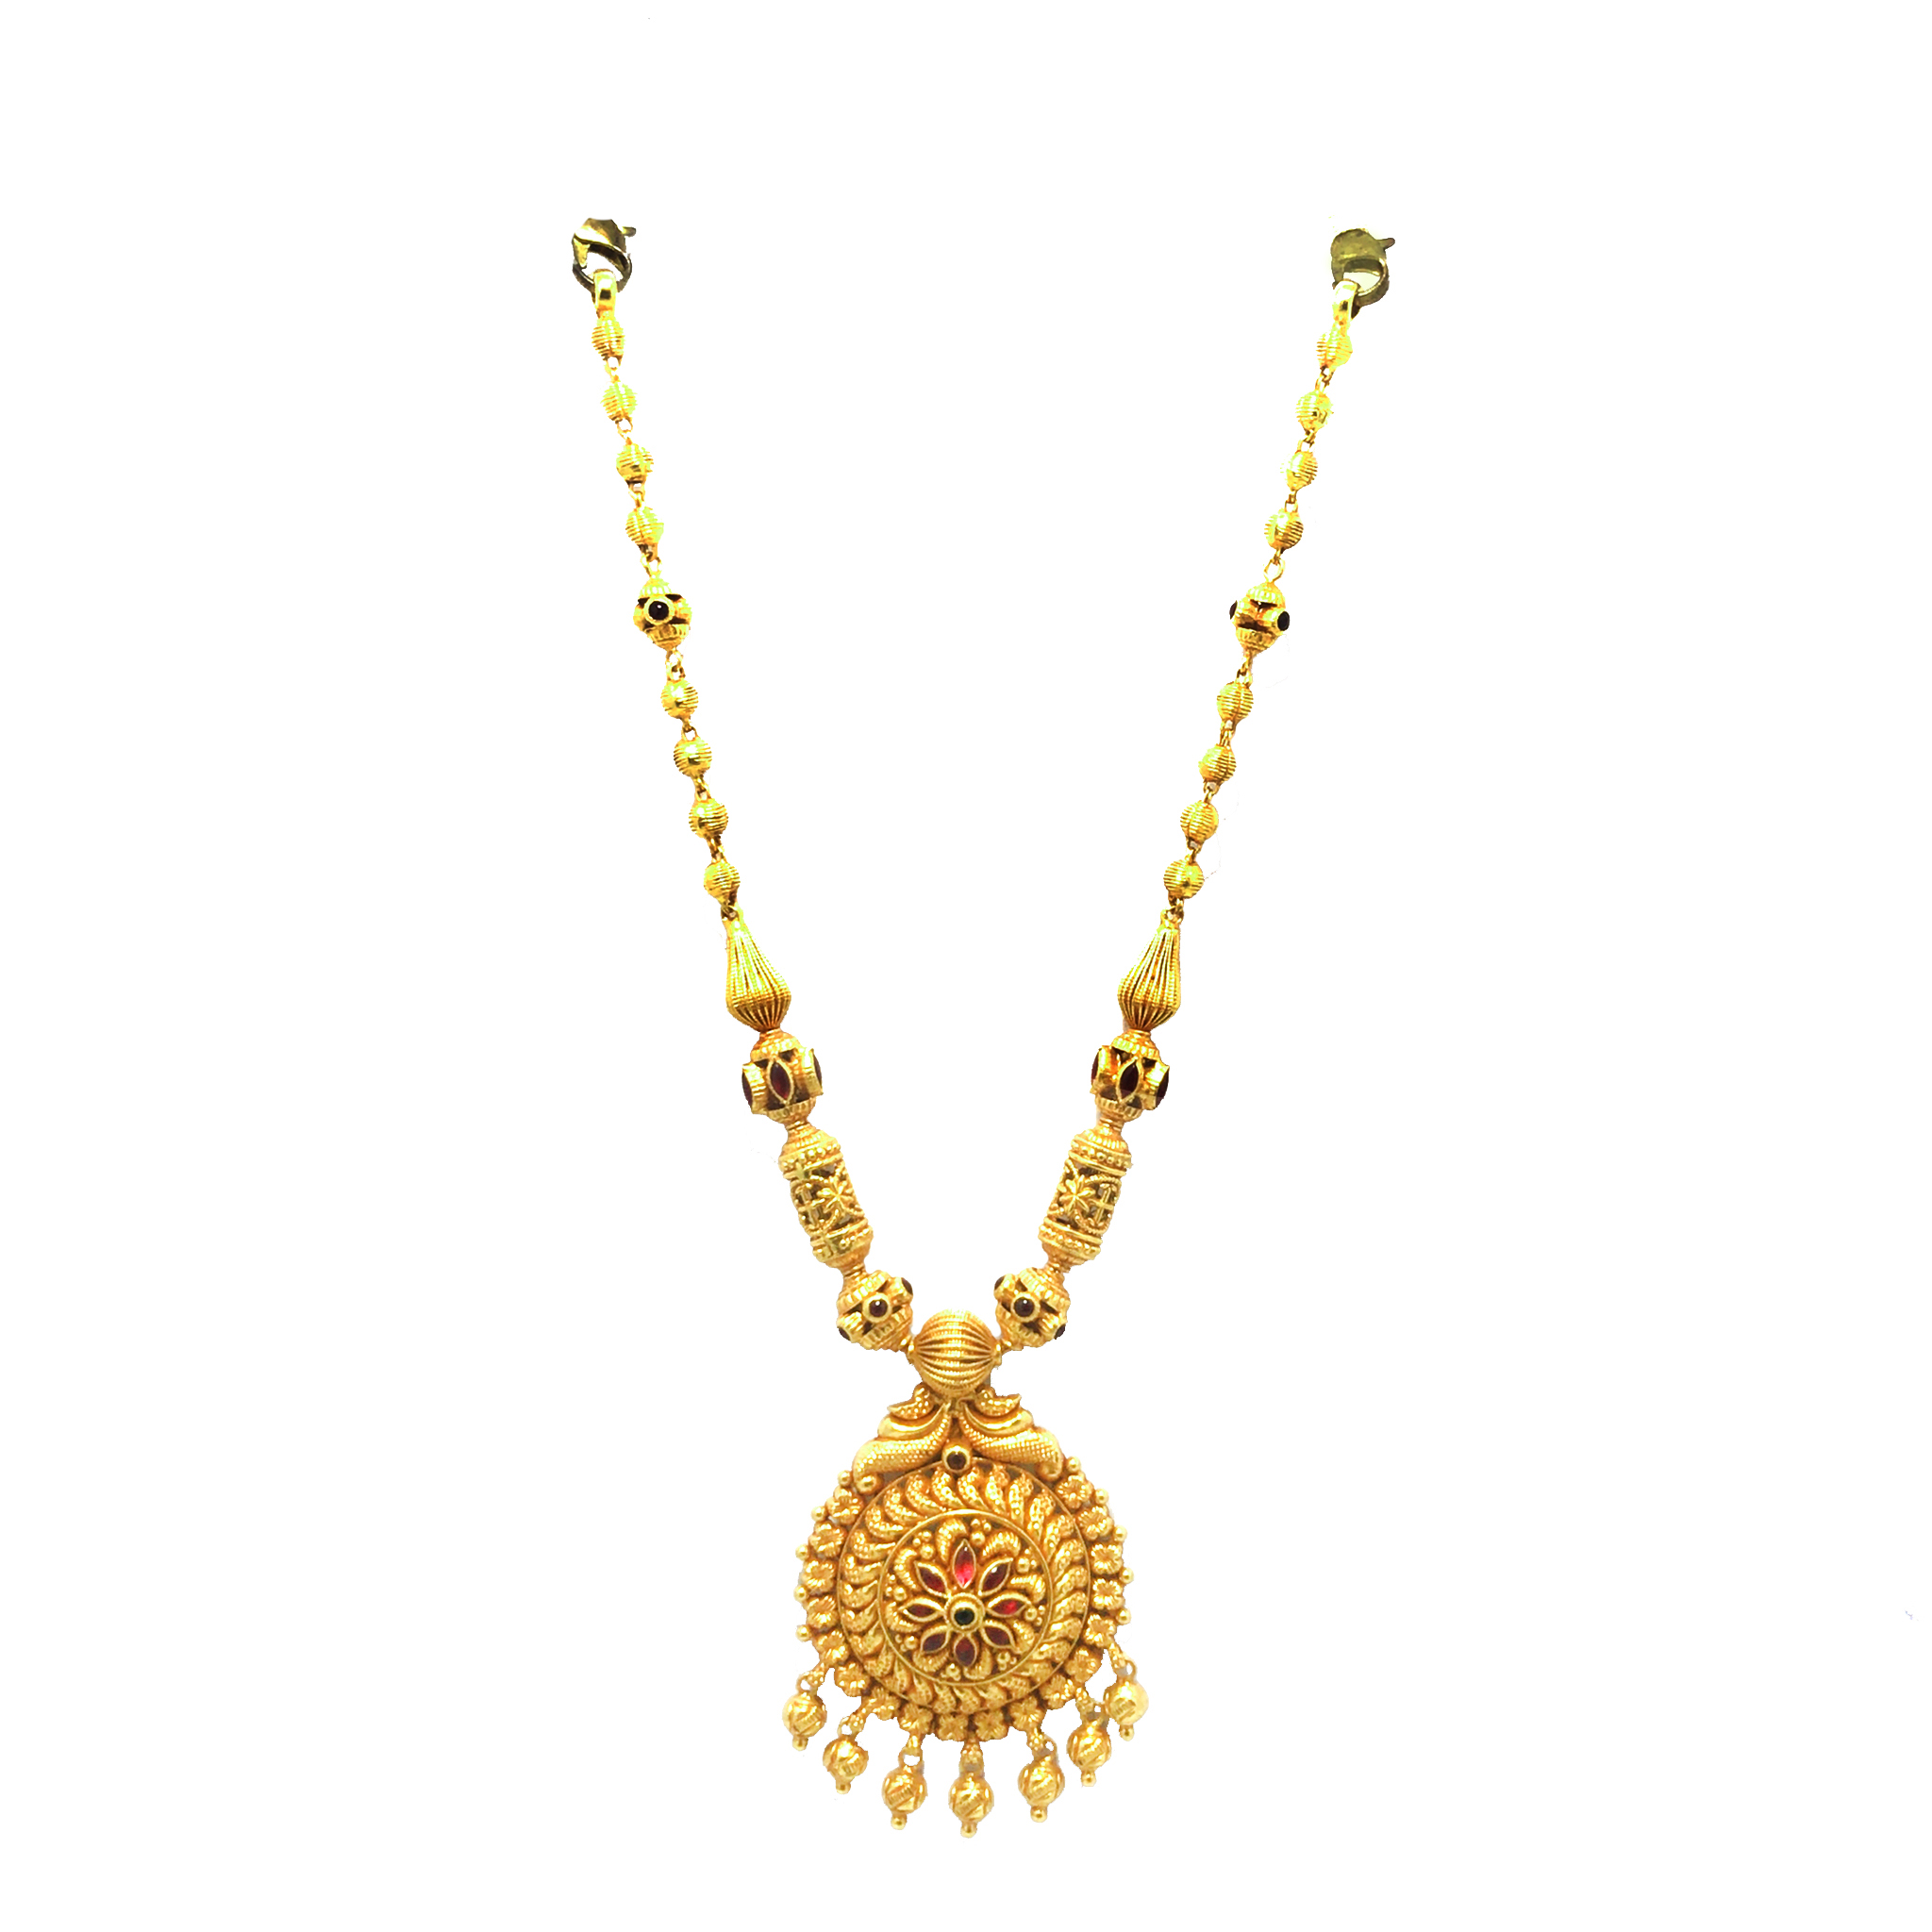 Gold  Traditional Evening Wear Rose Gold 22kt with CZ - Cubic Zirconia Necklace-240-GNL0002 GNL0002-1.jpg